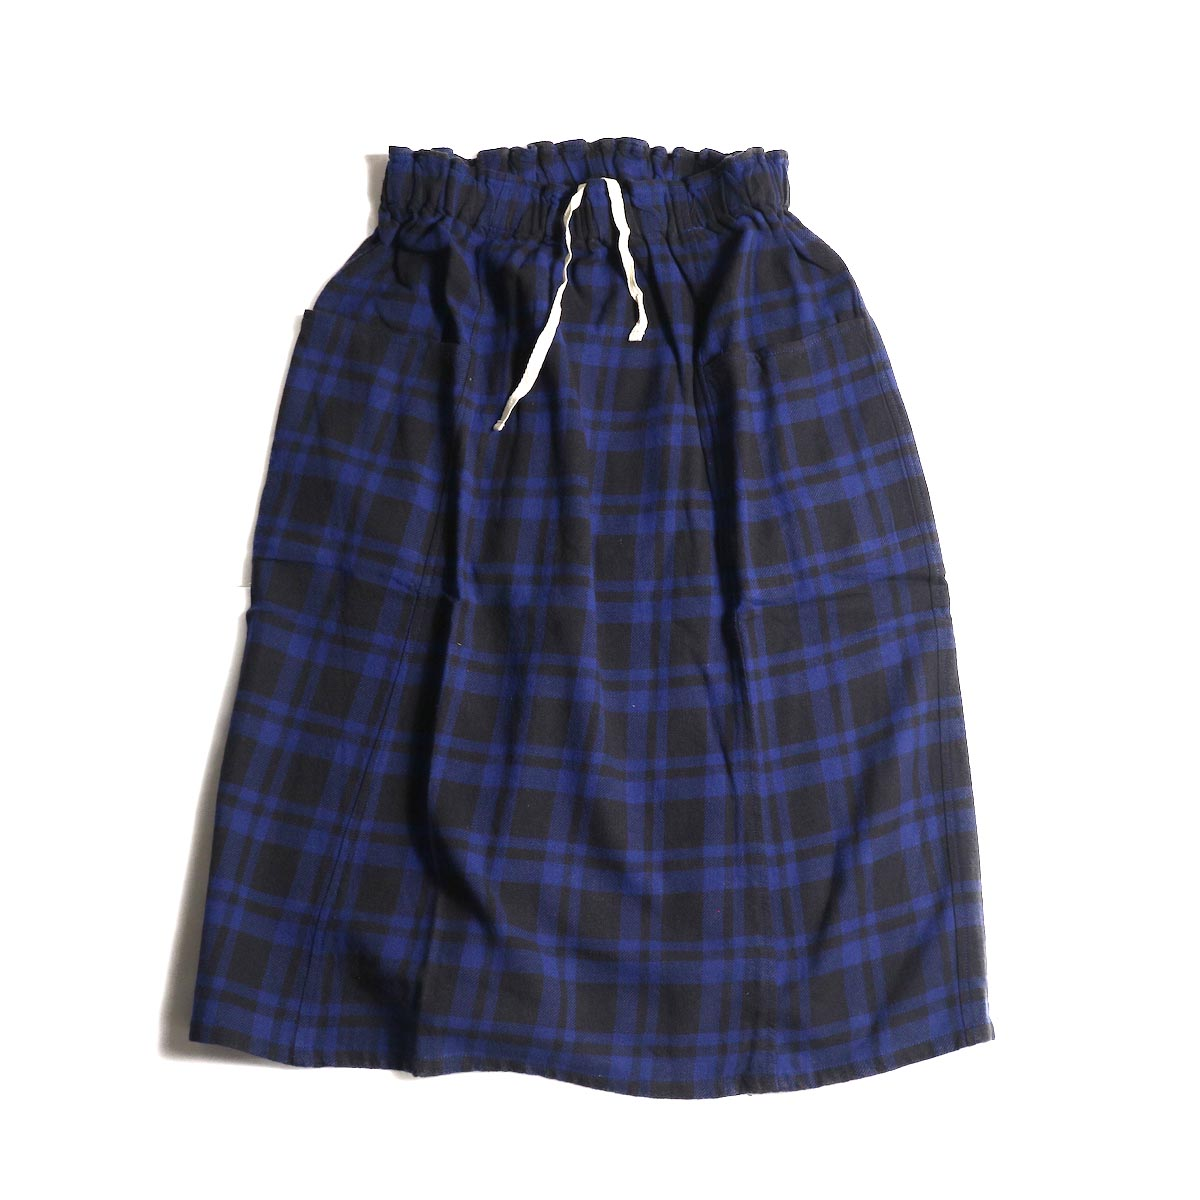 SOUTH2 WEST8 / Army String Skirt -Plaid Twill (Blue/Black)